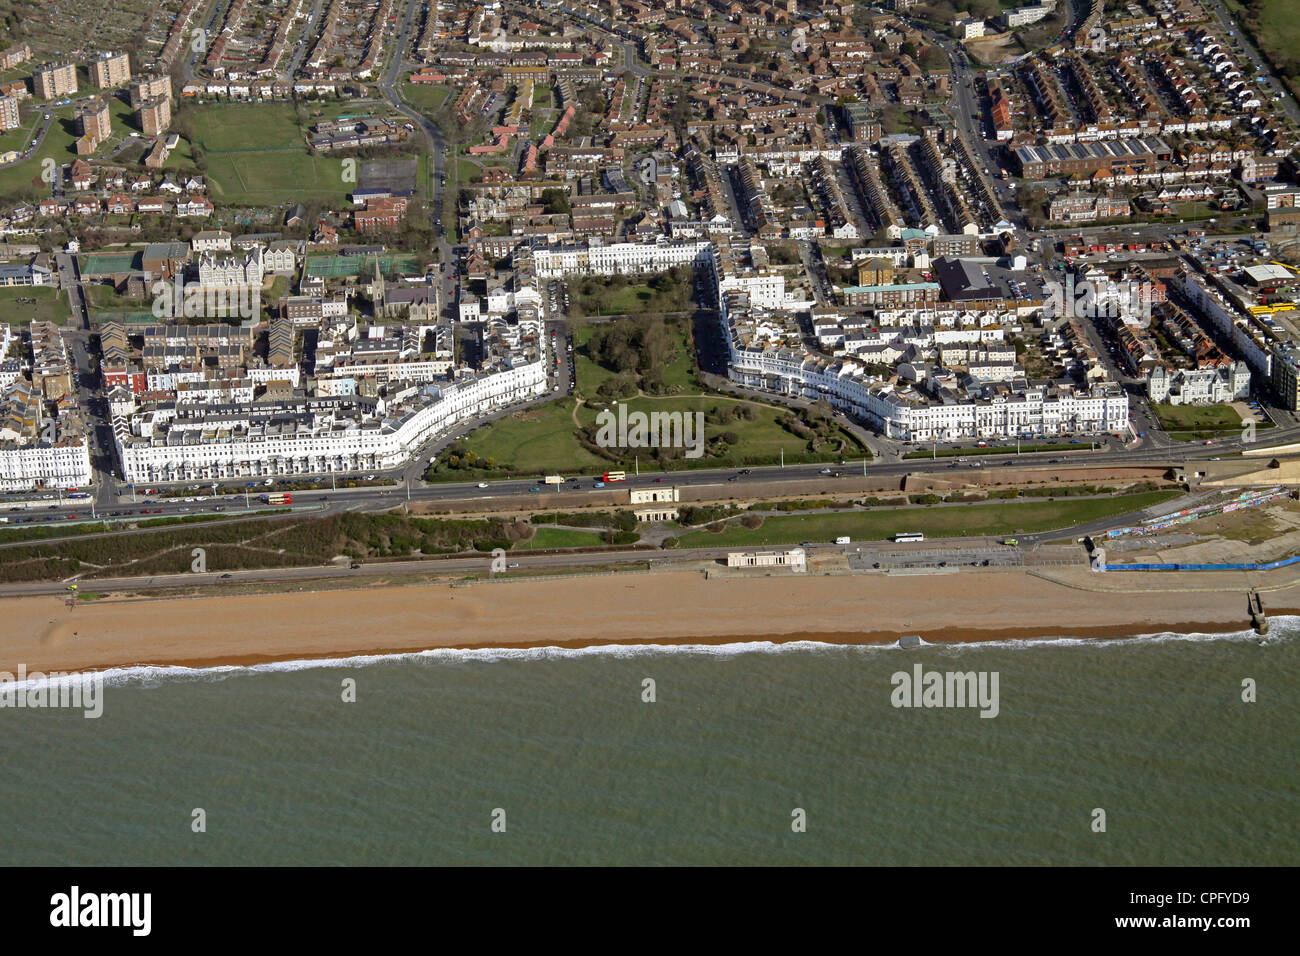 aerial view of Lewes Crescent, Brighton seafront - Stock Image